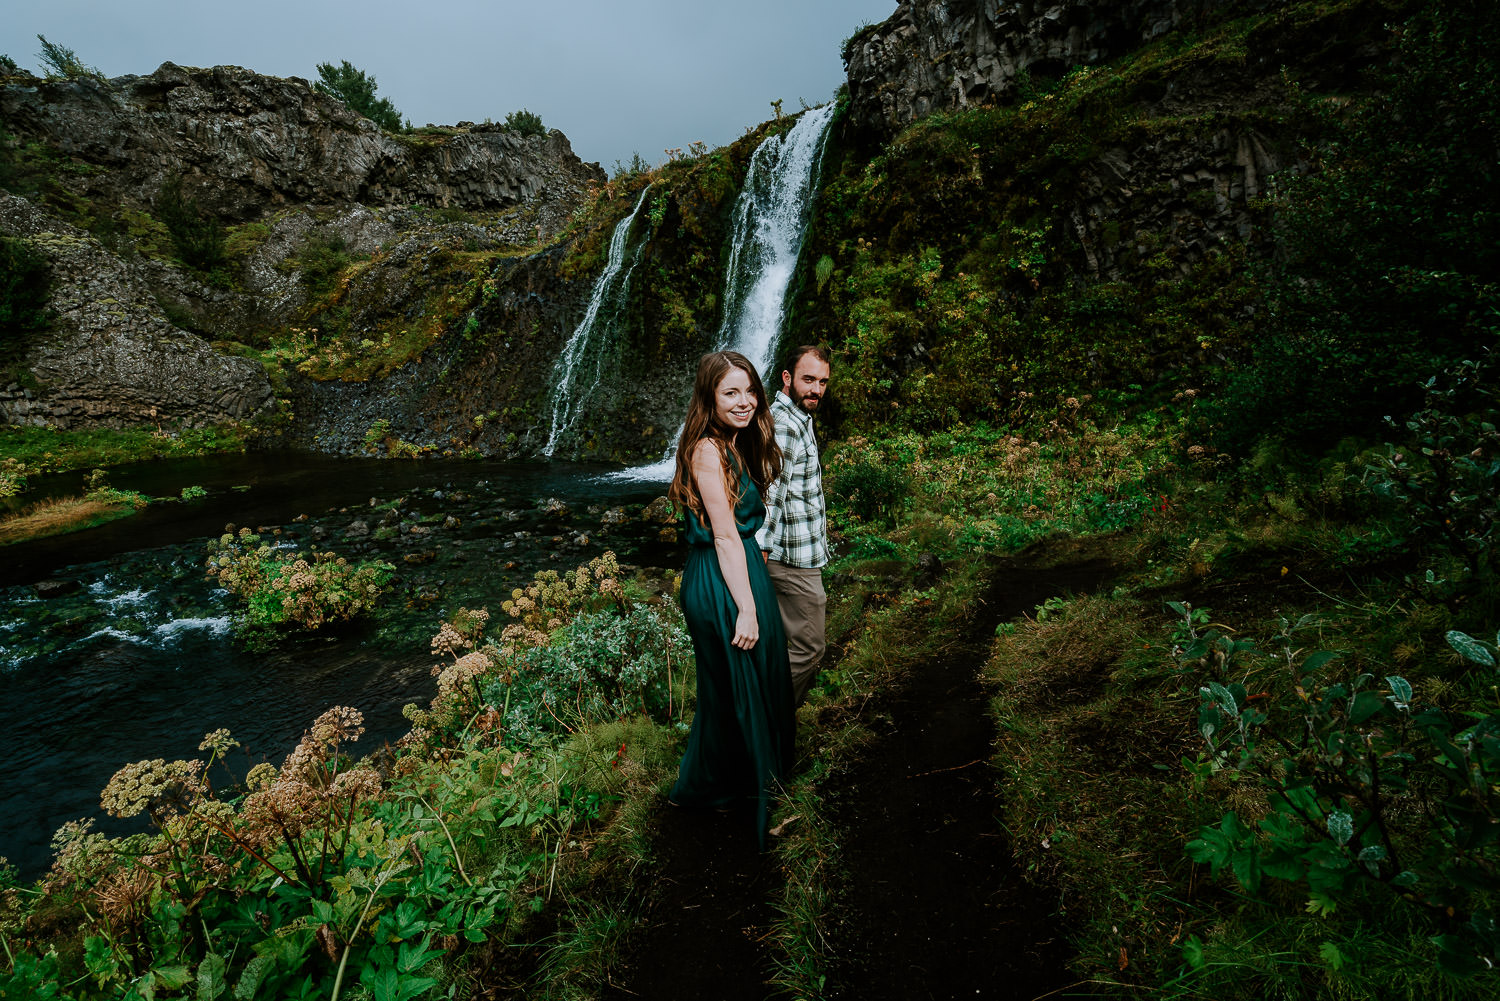 adventurous photoshoot in Iceland, Iceland Engagement Photography, Iceland Elopement Photography, Iceland Wedding, Iceland Elopement Photographer, waterfalls, highlands